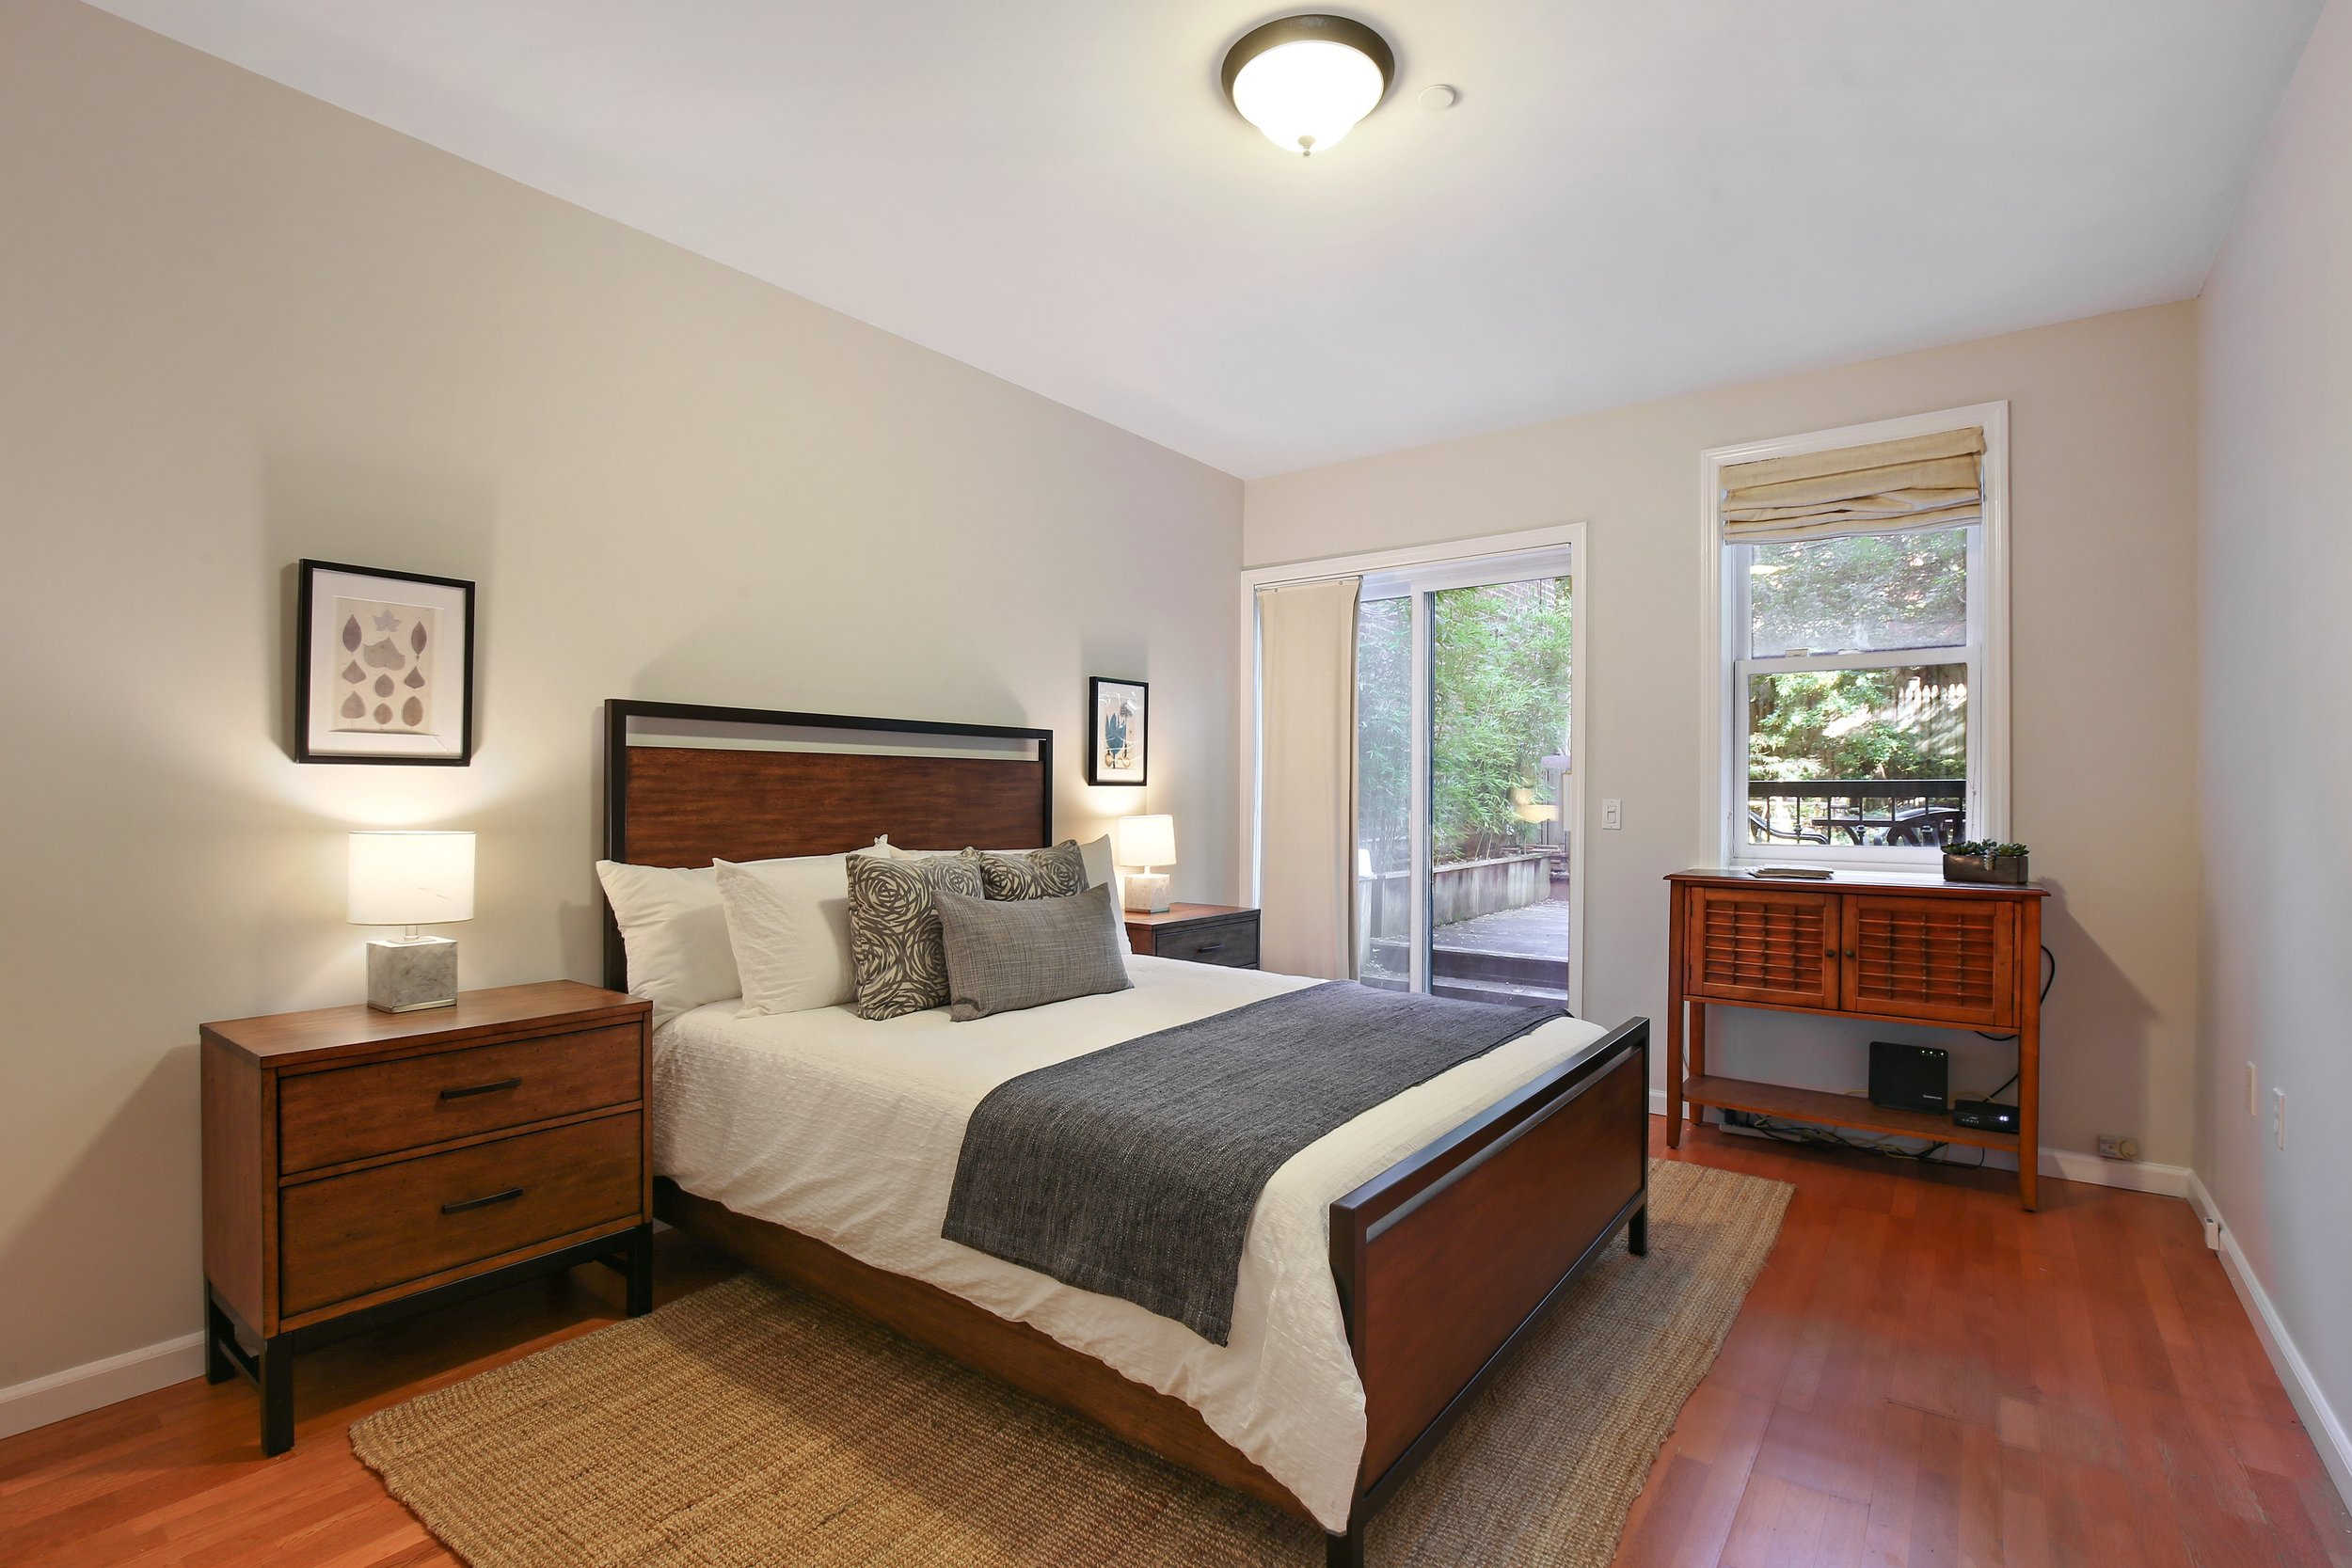 05_35SouthElliottPlace_A_14_MasterBedroom_HiRes.jpg